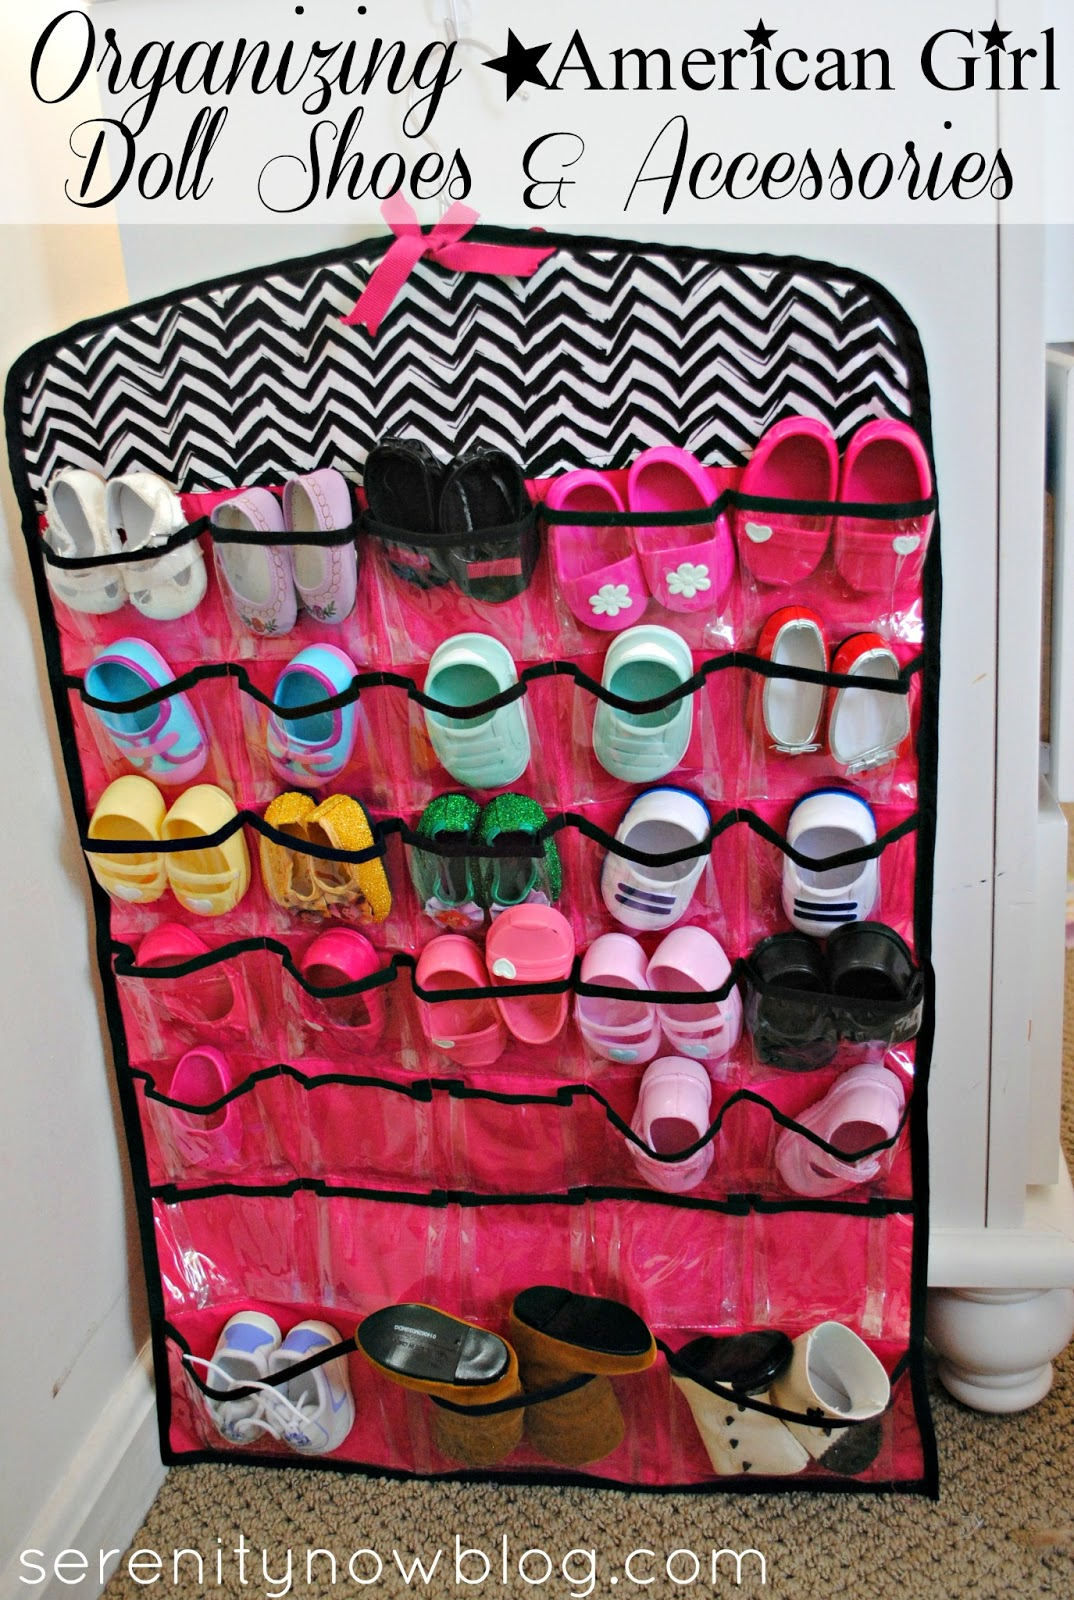 Good Organizing U0026 Storing American Girl Doll Shoes U0026 Accessories, From Serenity  Now